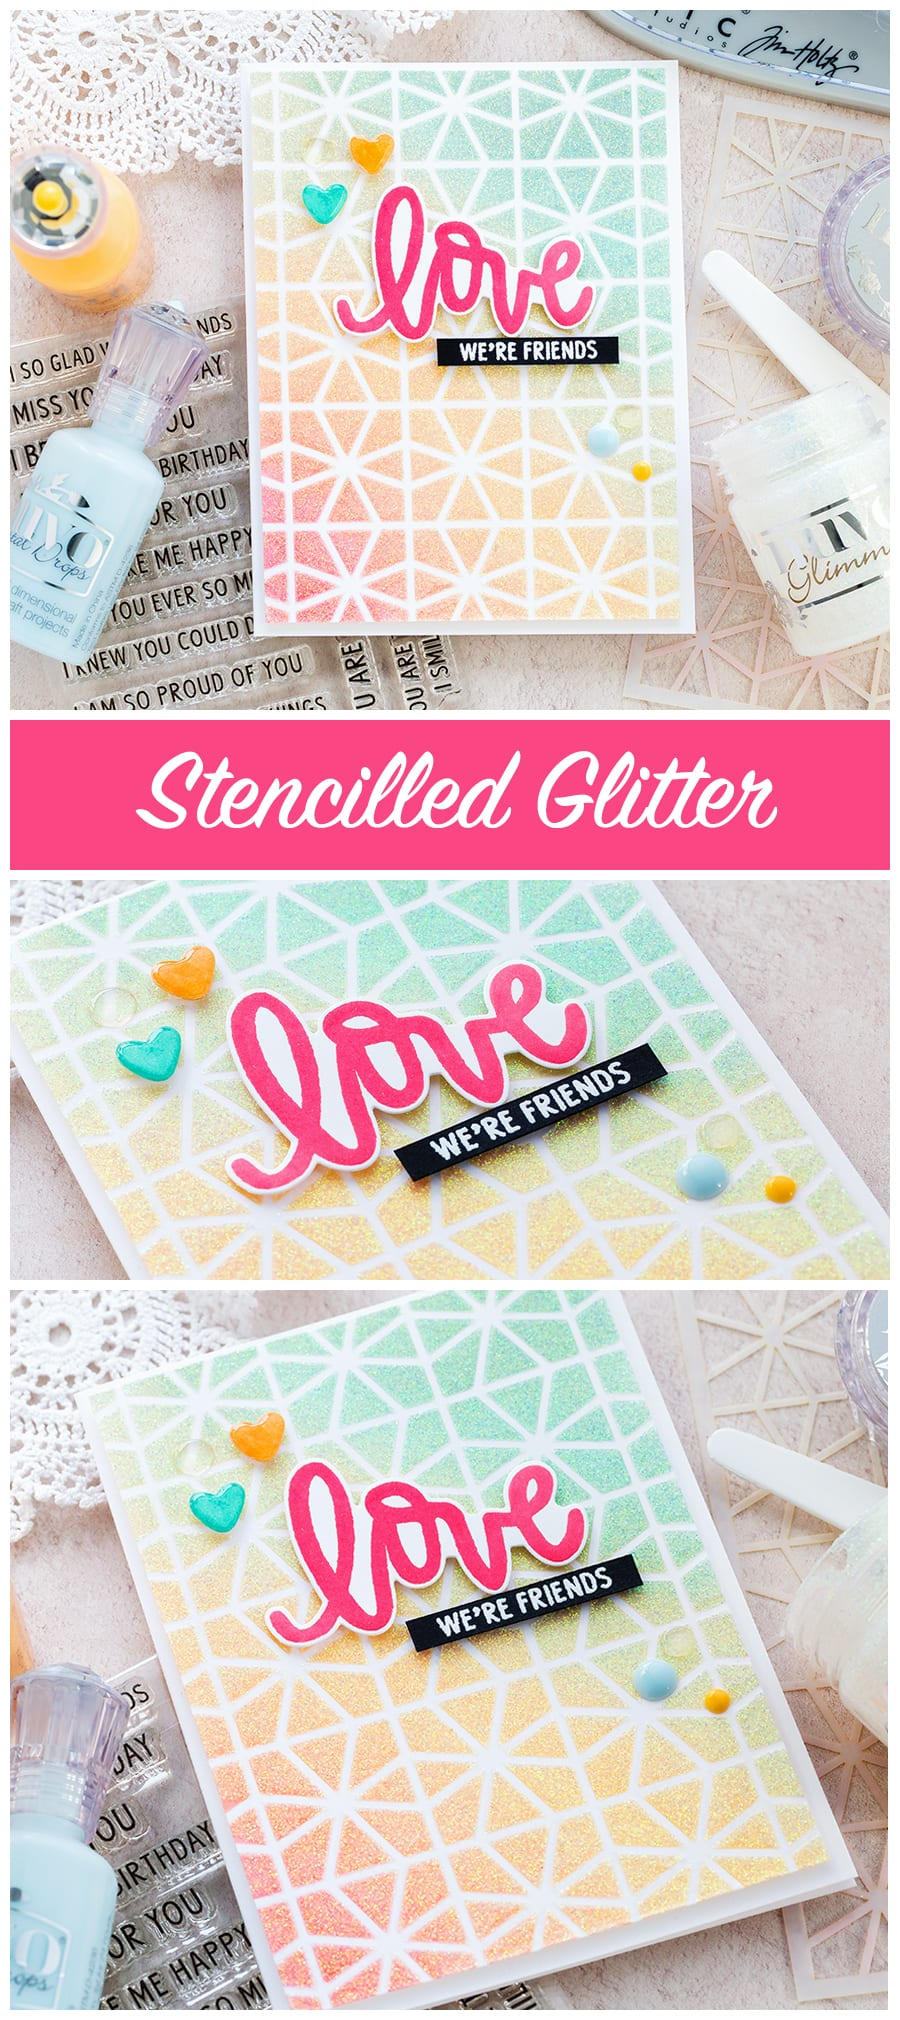 Stencilled glitter handmade card by Debby Hughes using products from Neat & Tangled and Tonic Studios. Find out more here: https://limedoodledesign.com/2018/02/stencilled-glitter/